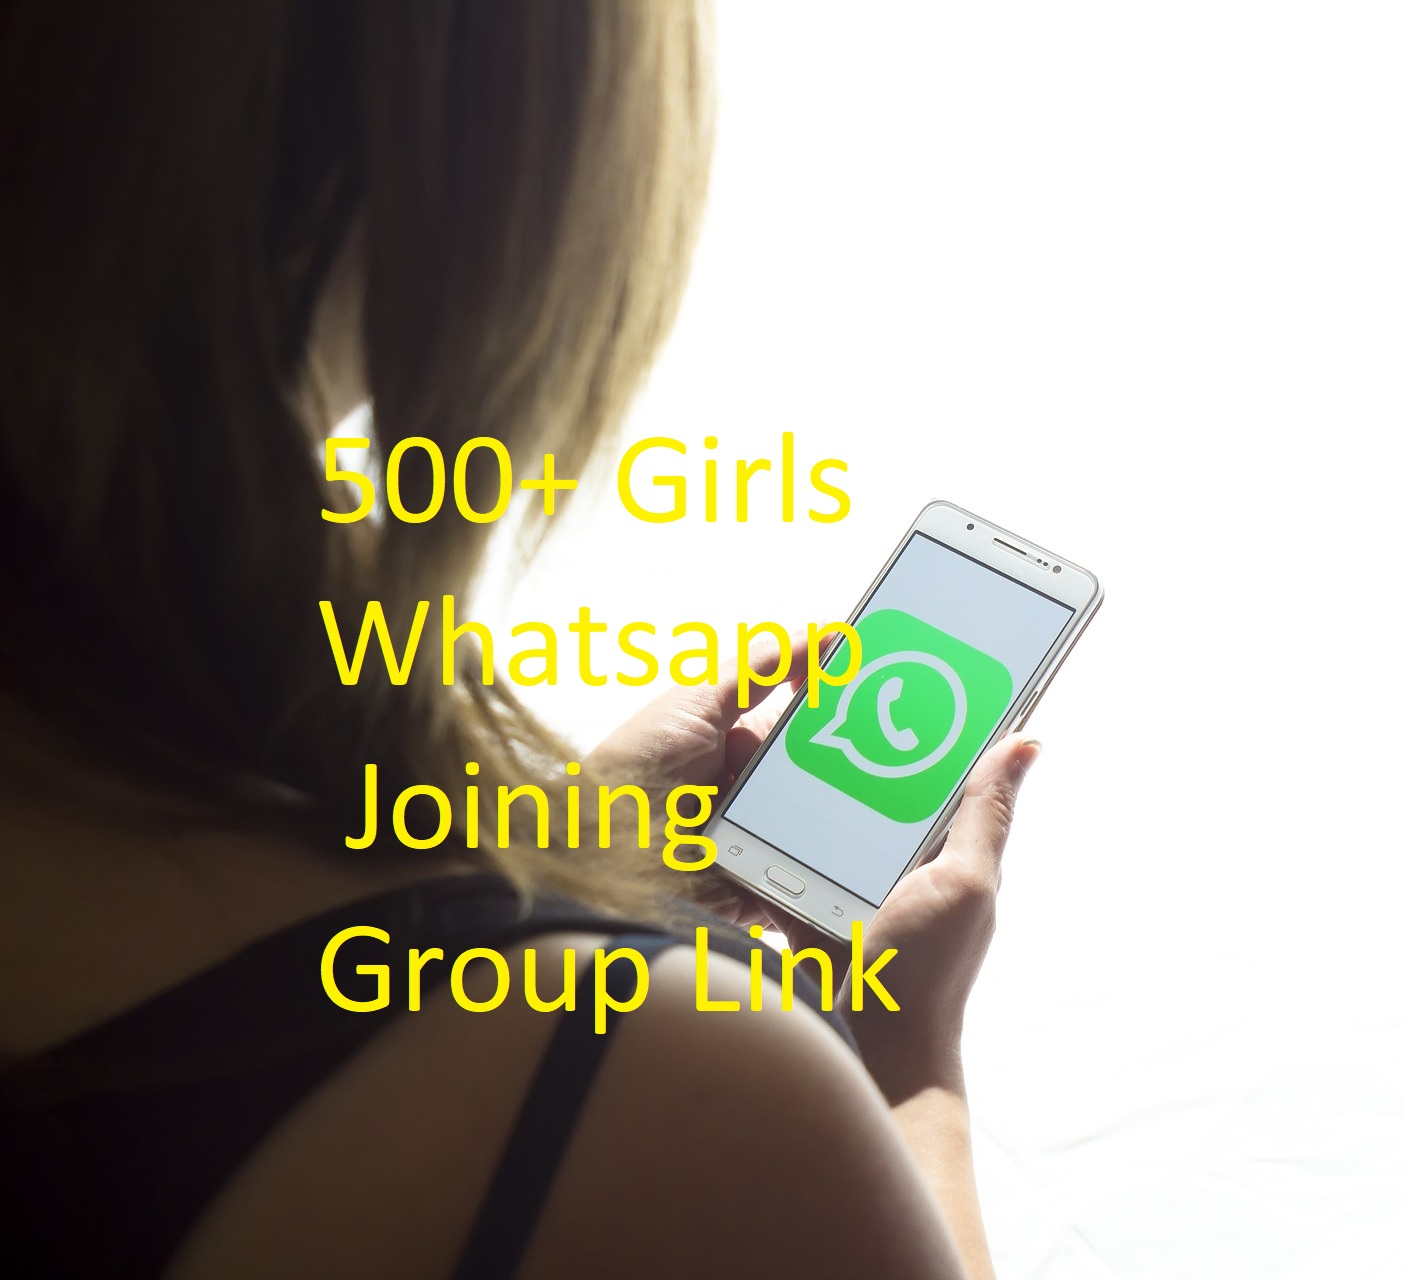 malayalam sex whatsapp group